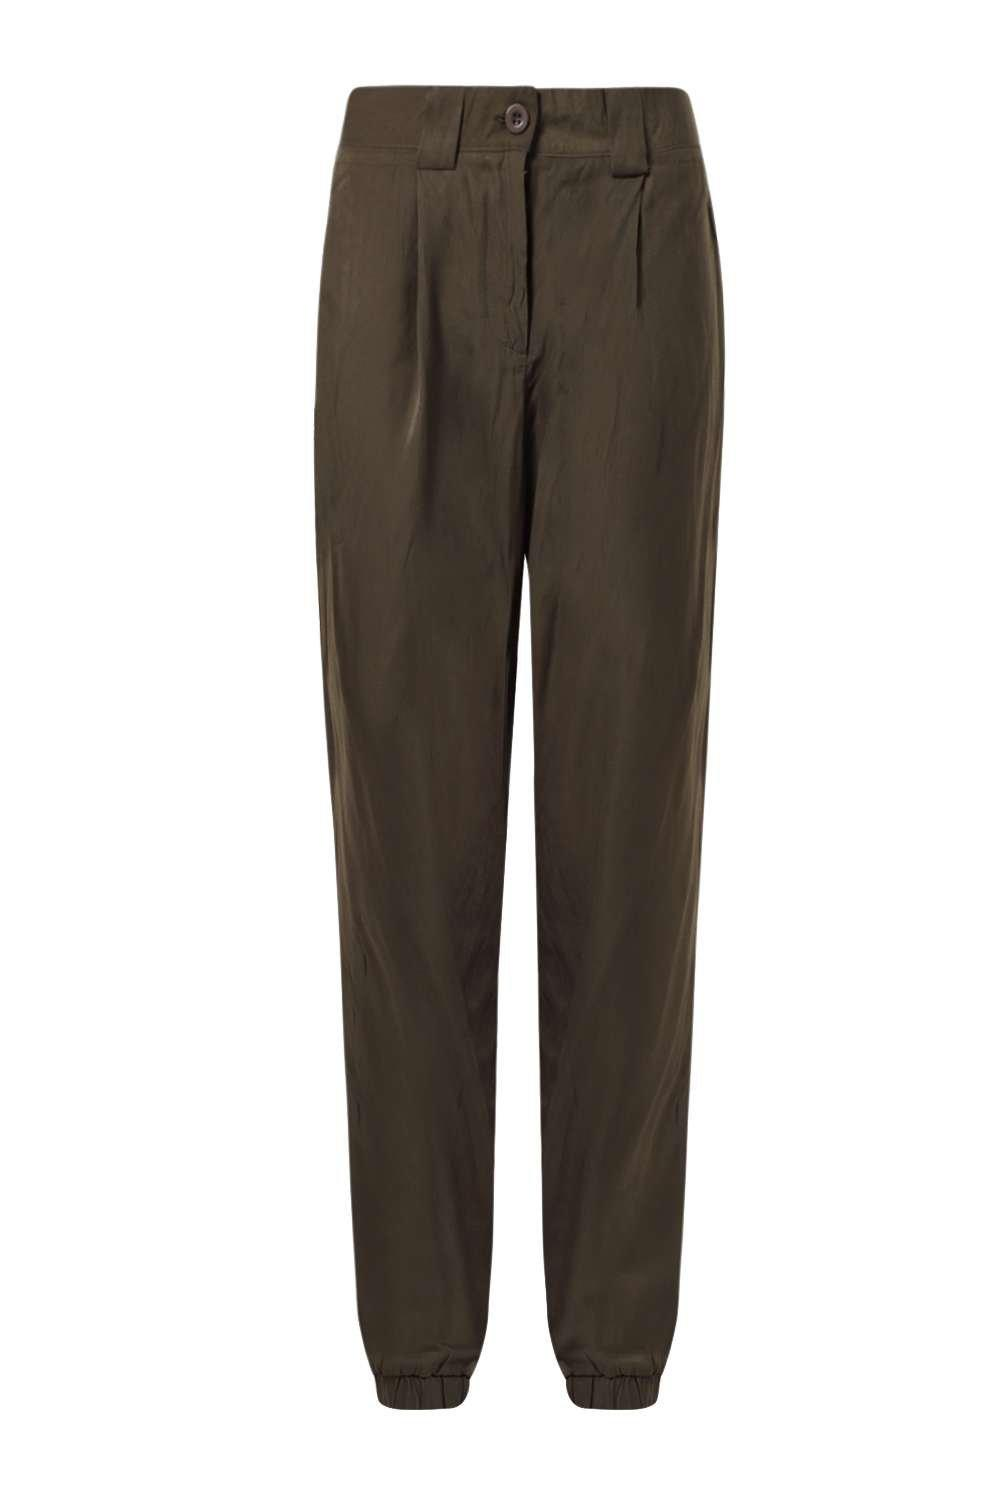 Elasticated Waist. Cuffed Trousers. Plain Cuffed Trousers. Plain Satin Fabric. Ali Baba / Harem Trousers. Full Ankle Length. Style Code. Size Guide.